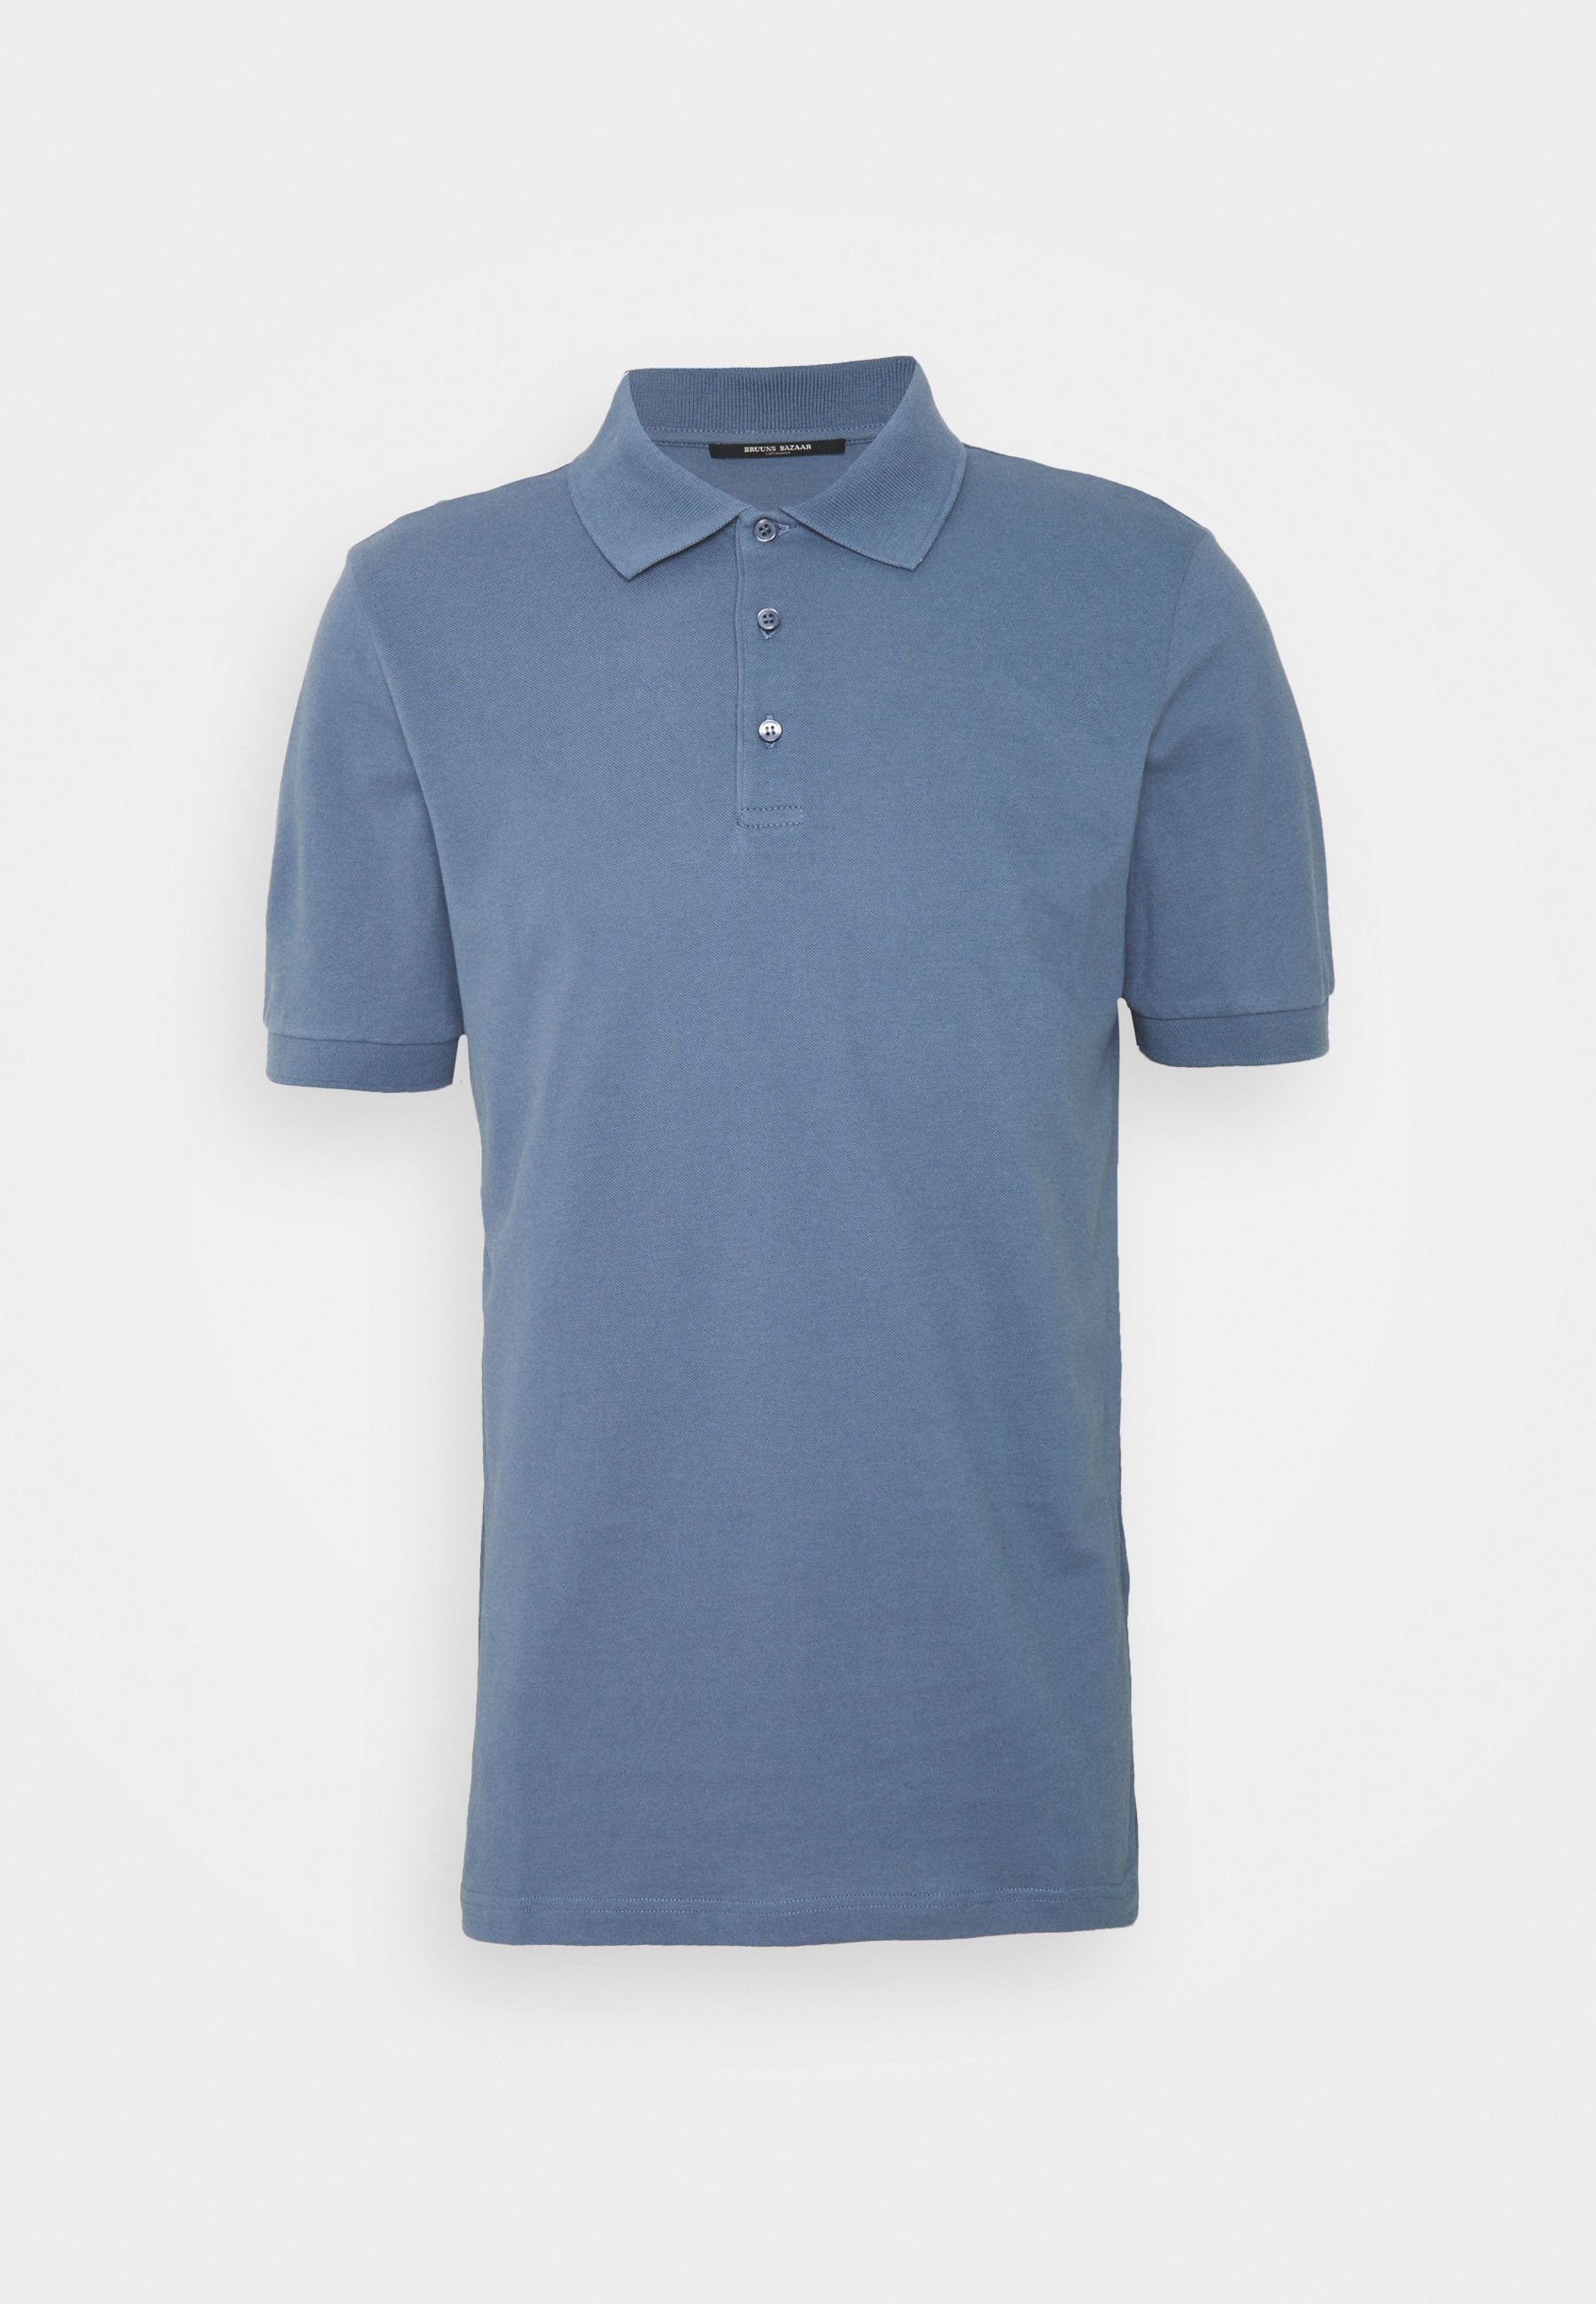 Homme RAUL GONZALES - Polo